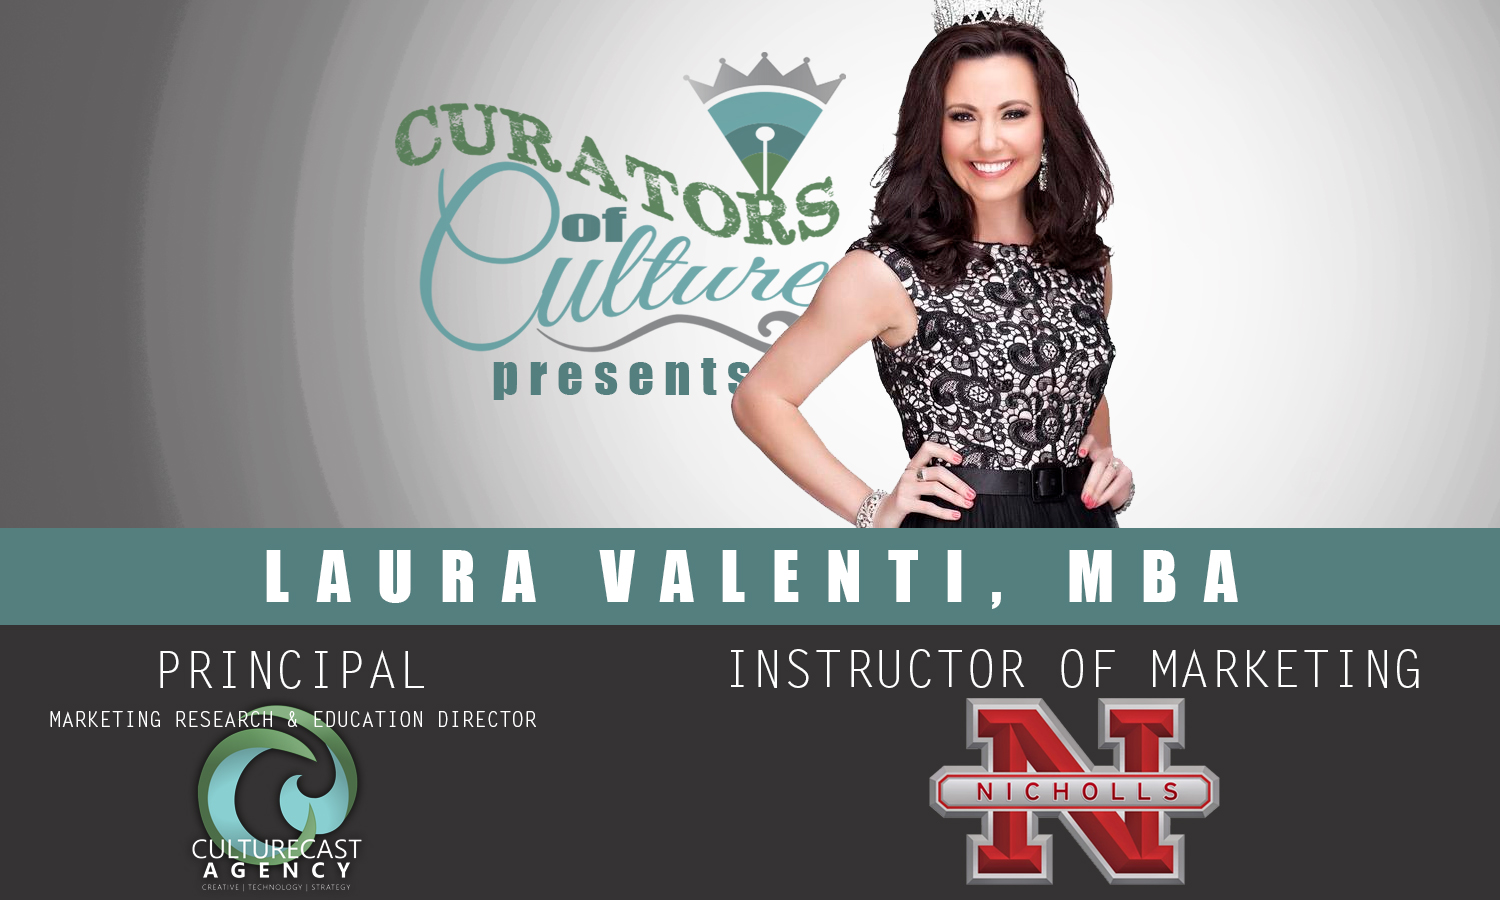 Curators of a Culture: Meet the Authors of Culturecast | Laura Valenti, MBA